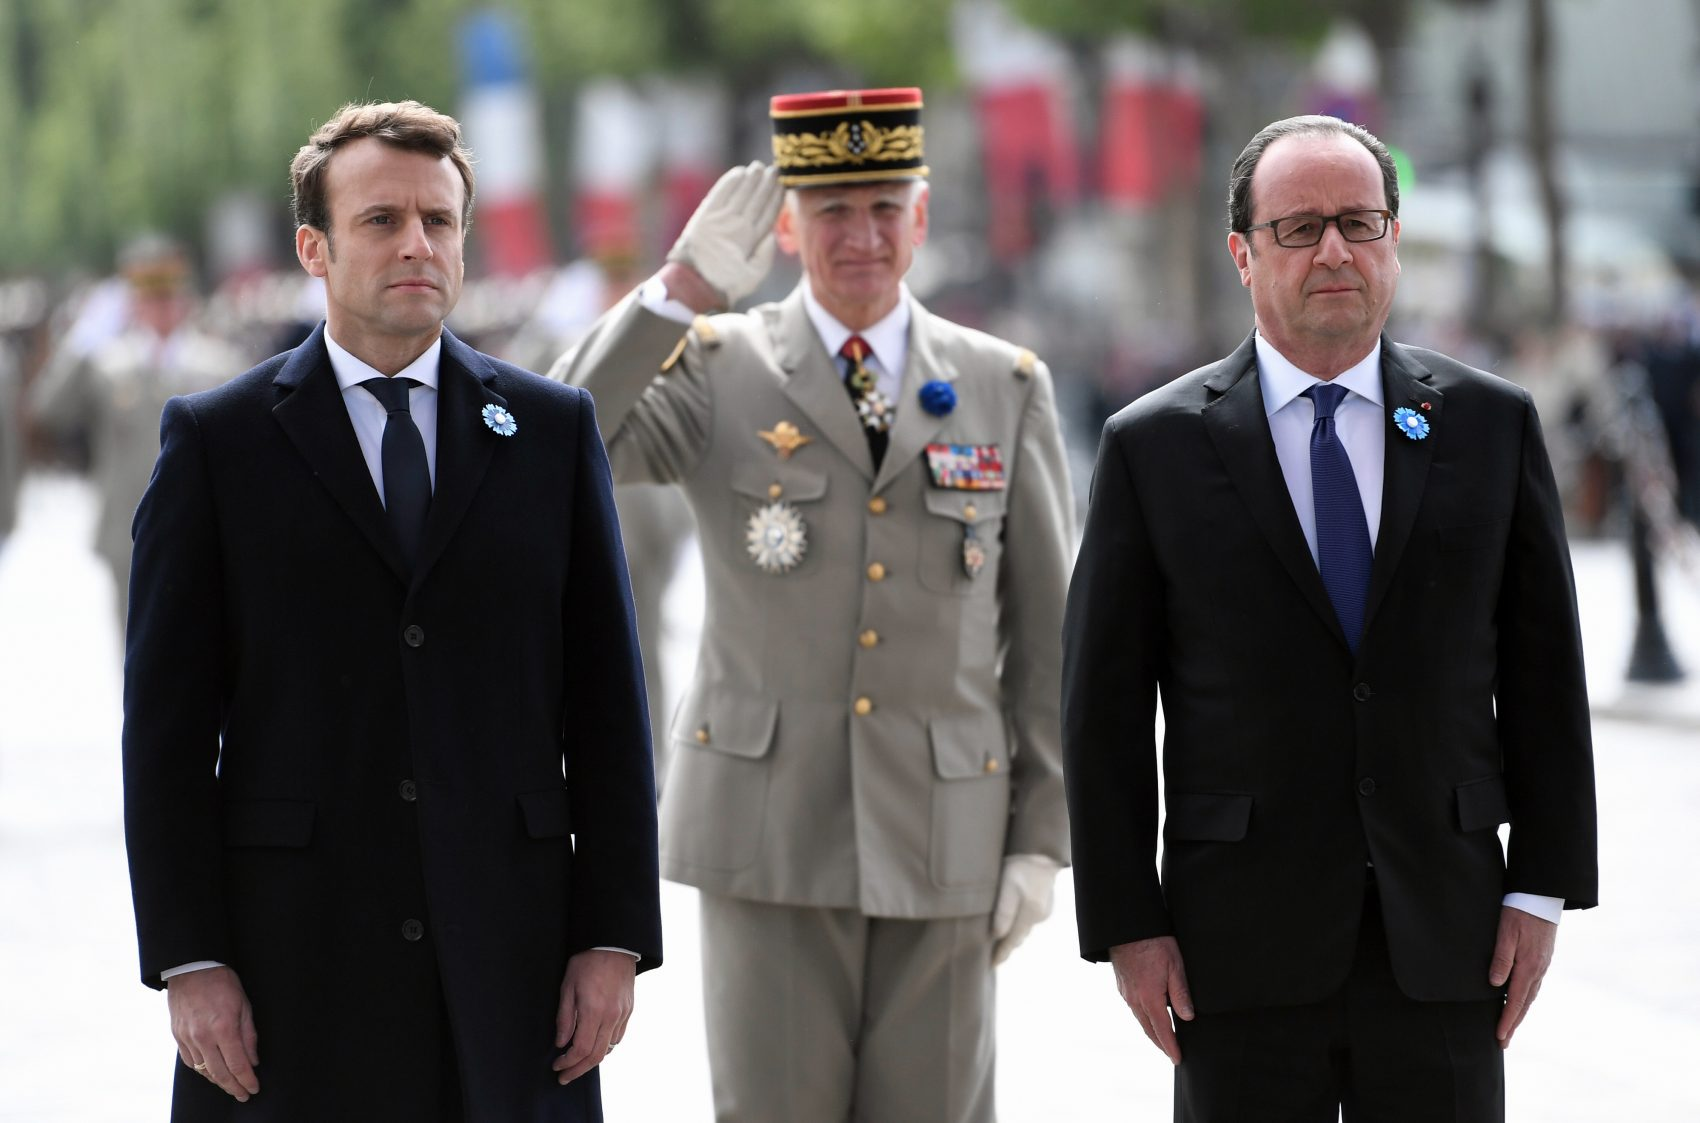 Can the new president bring change to a country where intolerance is very much alive? asks Régine Michelle Jean-Charles. Pictured: French President-elect Emmanuel Macron, left, an current President Francois Hollande, right, attend a ceremony to mark the end of World War II at the Arc de Triomphe in Paris, Monday, May 8, 2017. Macron defeated far-right leader Marine Le Pen handily in Sunday's presidential vote, and now must pull together a majority for his year-old political movement by mid-June legislative elections. (Stepahne de Sakutin, Pool via AP)